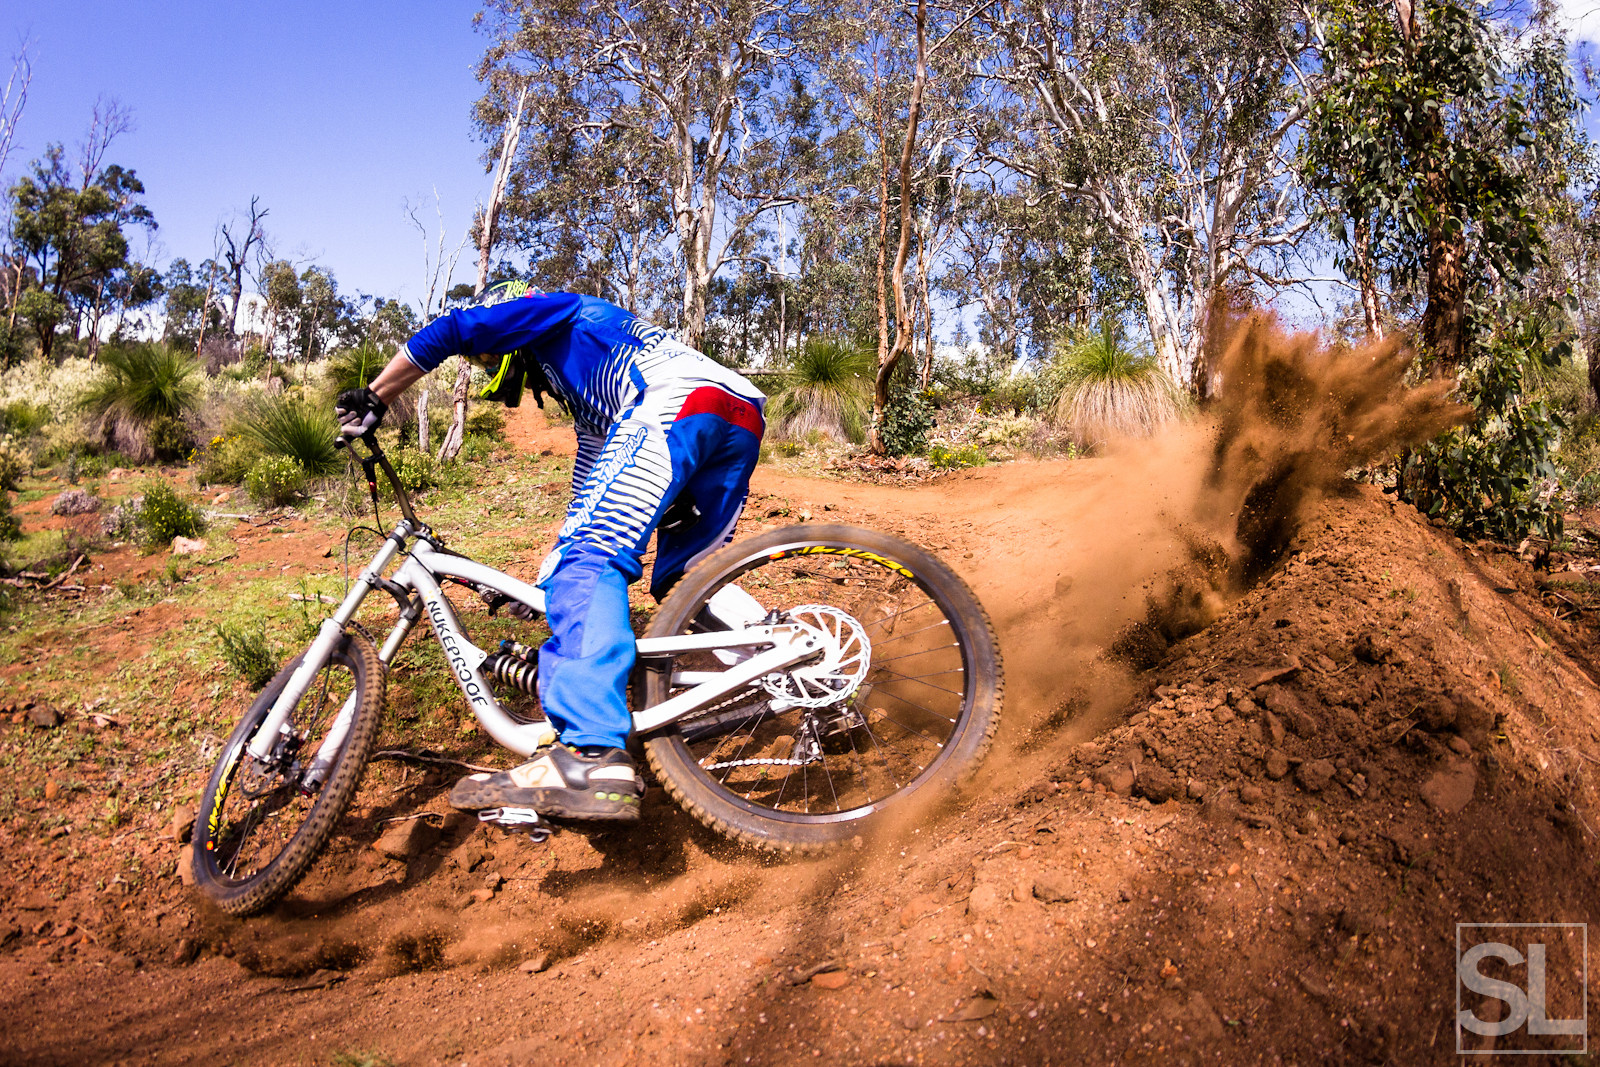 shreddin' - Chamakazi - Mountain Biking Pictures - Vital MTB